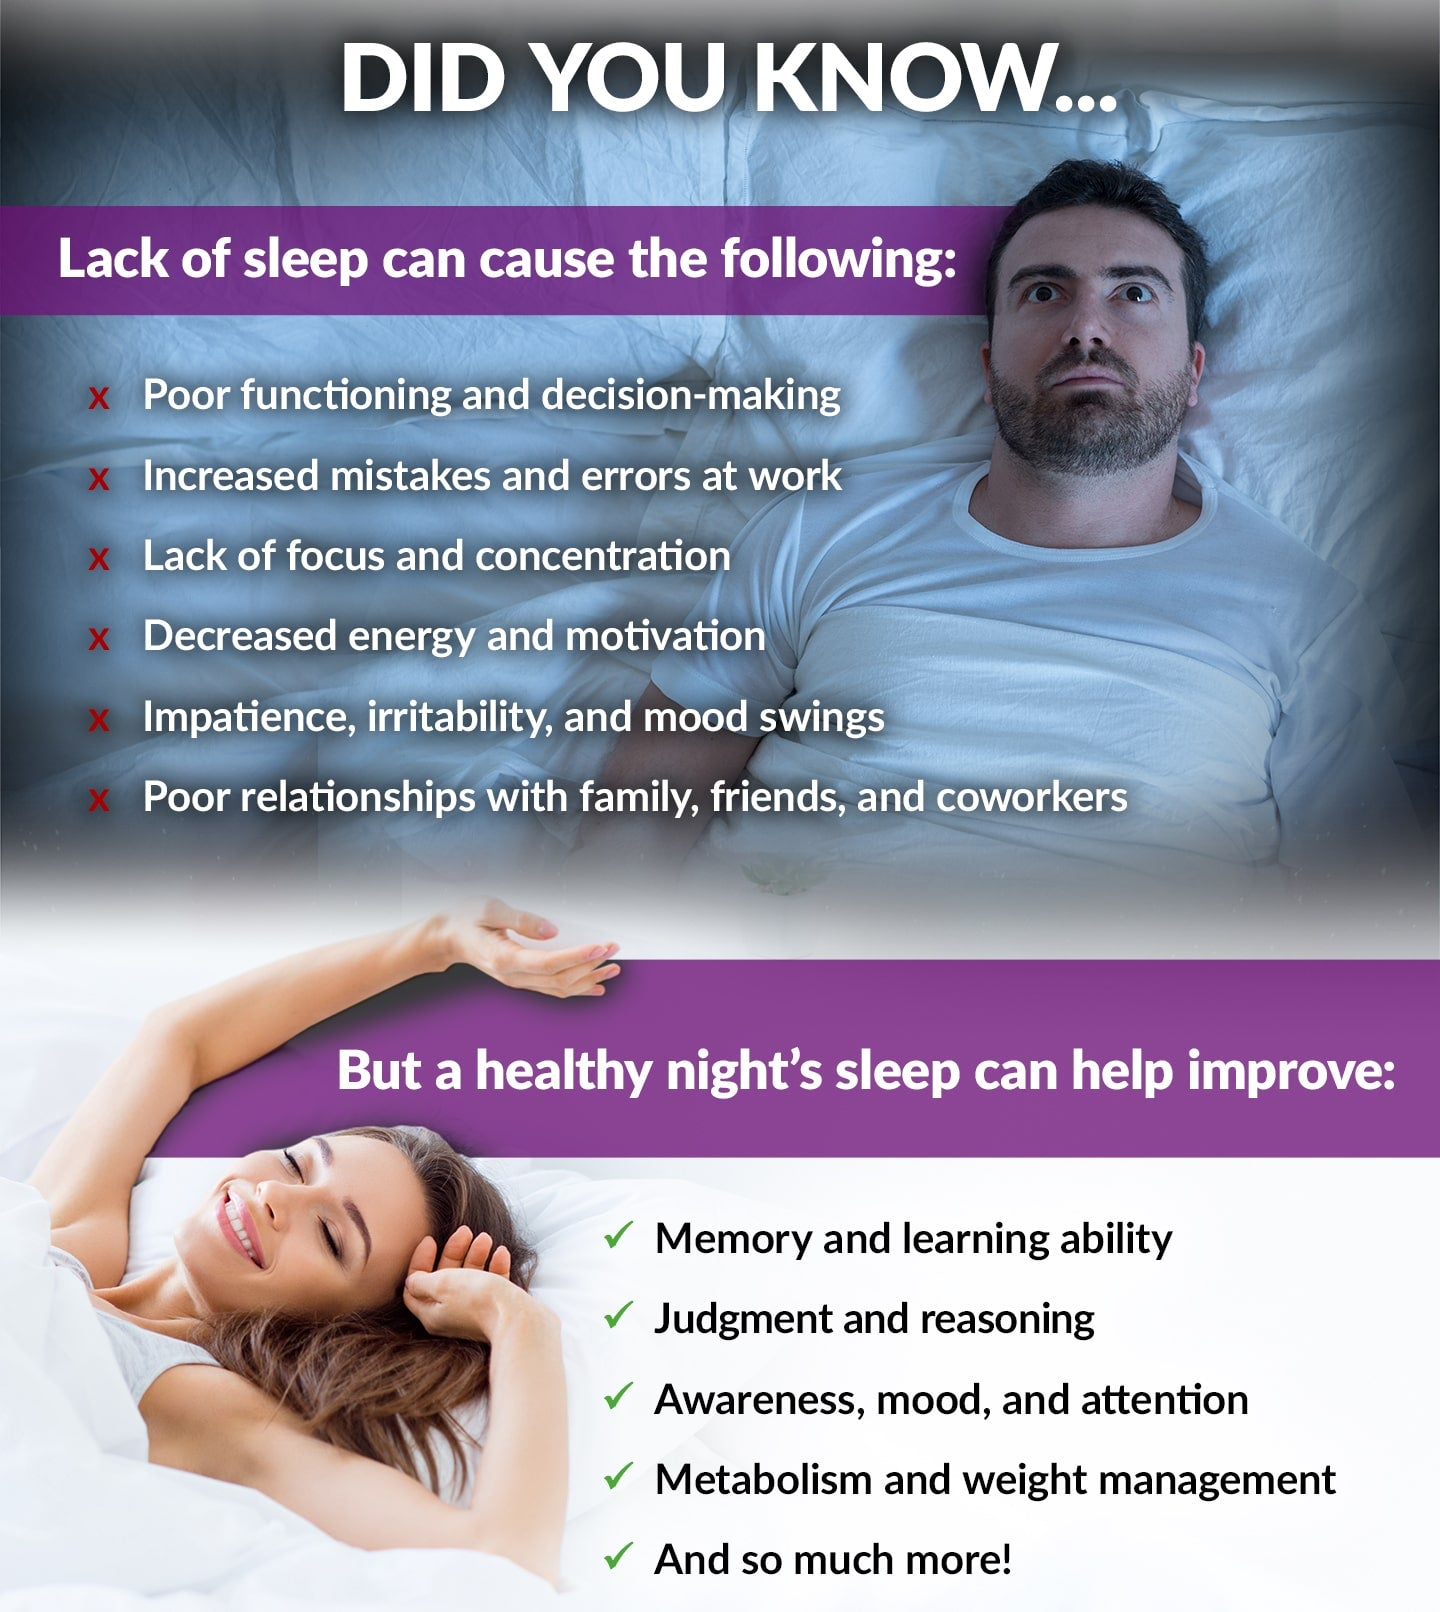 DID YOU KNOW... Lack of sleep can cause the following: Poor functioning and decision-making, Increased mistakes and errors at work, Lack of focus and concentration, Decreased energy and motivation, Impatience, irritability, and mood swings, Poor relationships with family, friends, and coworkers. But a healthy night's sleep can help improve: Memory and learning ability, Judgment and reasoning, Awareness, mood, and attention, Metabolism and weight management, And so much more!